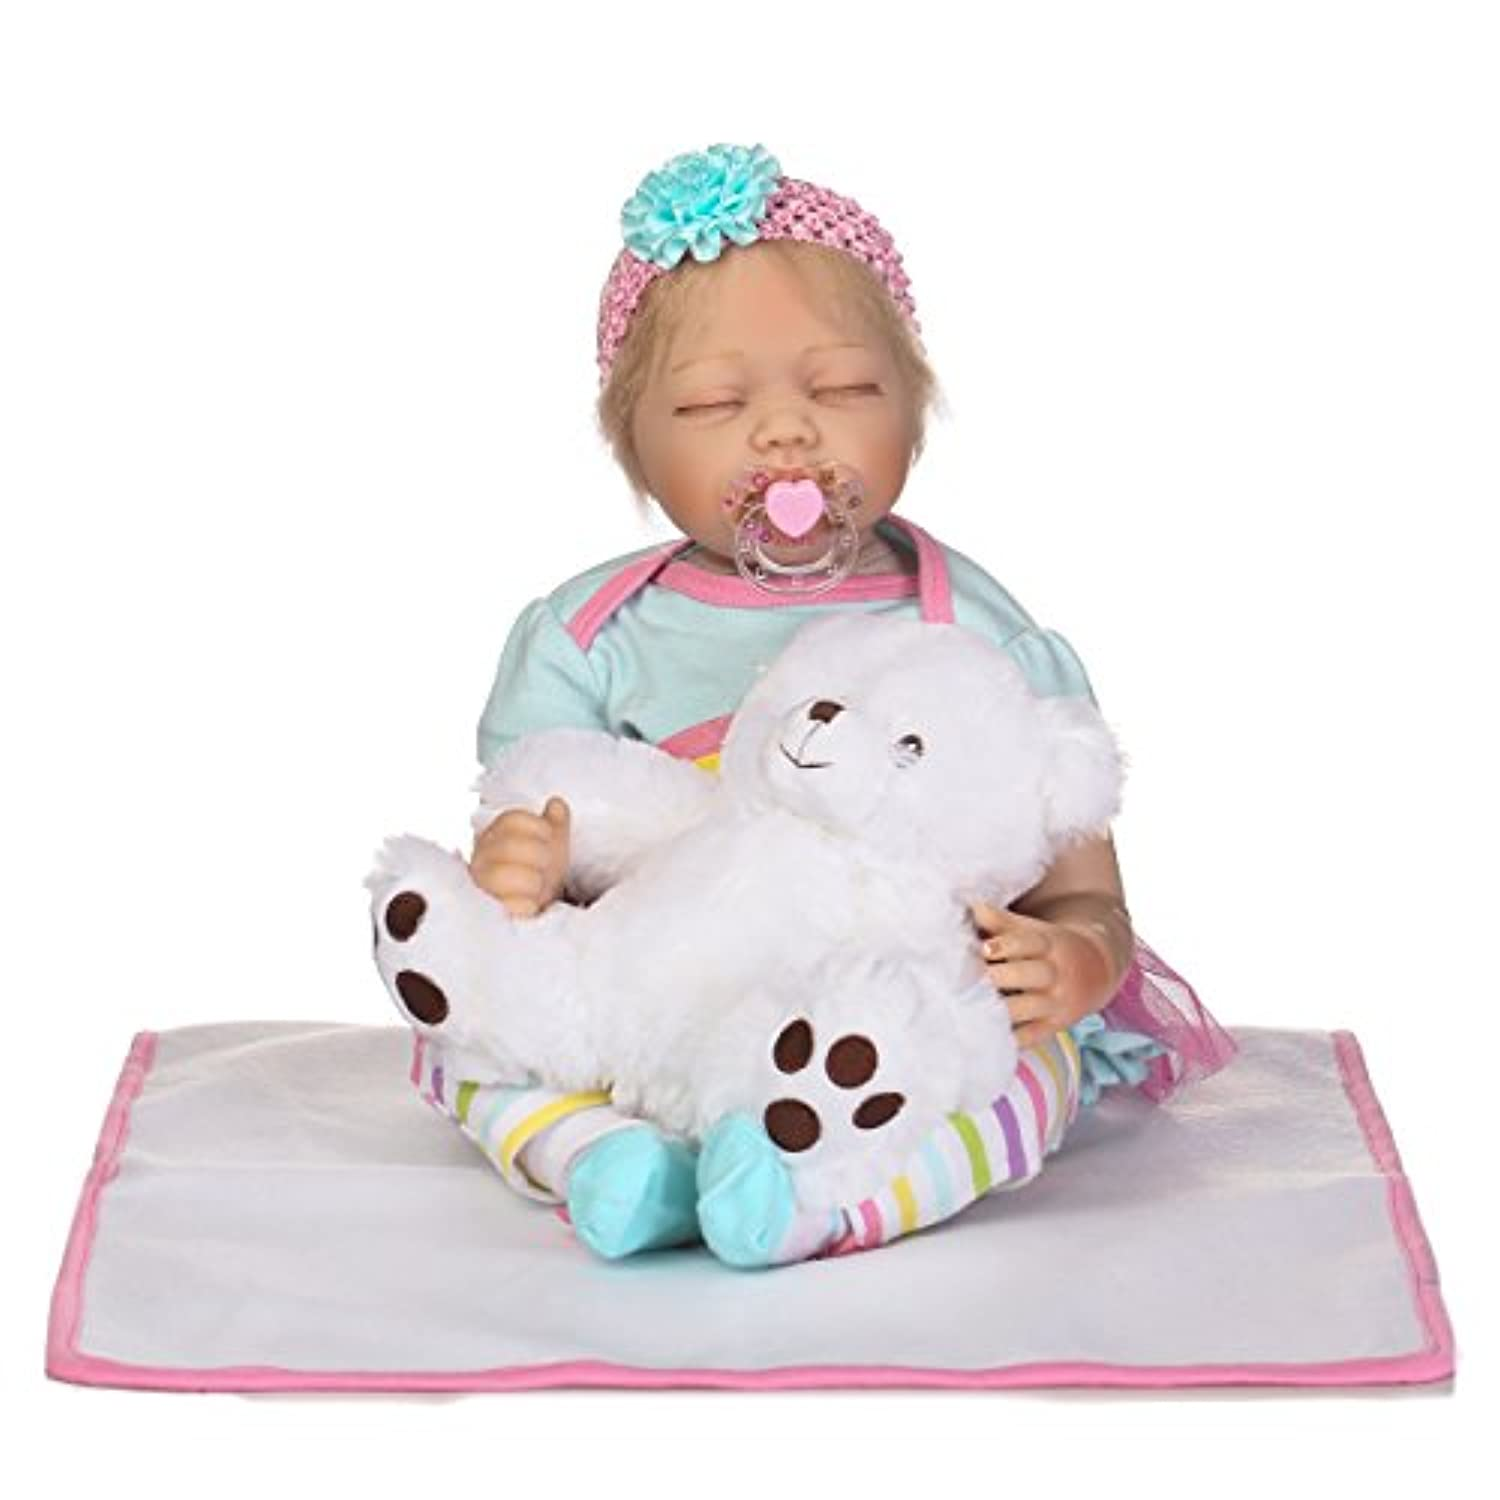 SanyDoll Rebornベビー人形ソフトSilicone 22インチ55 cm磁気Lovely Lifelike Cute Lovely Baby b0763lppxt